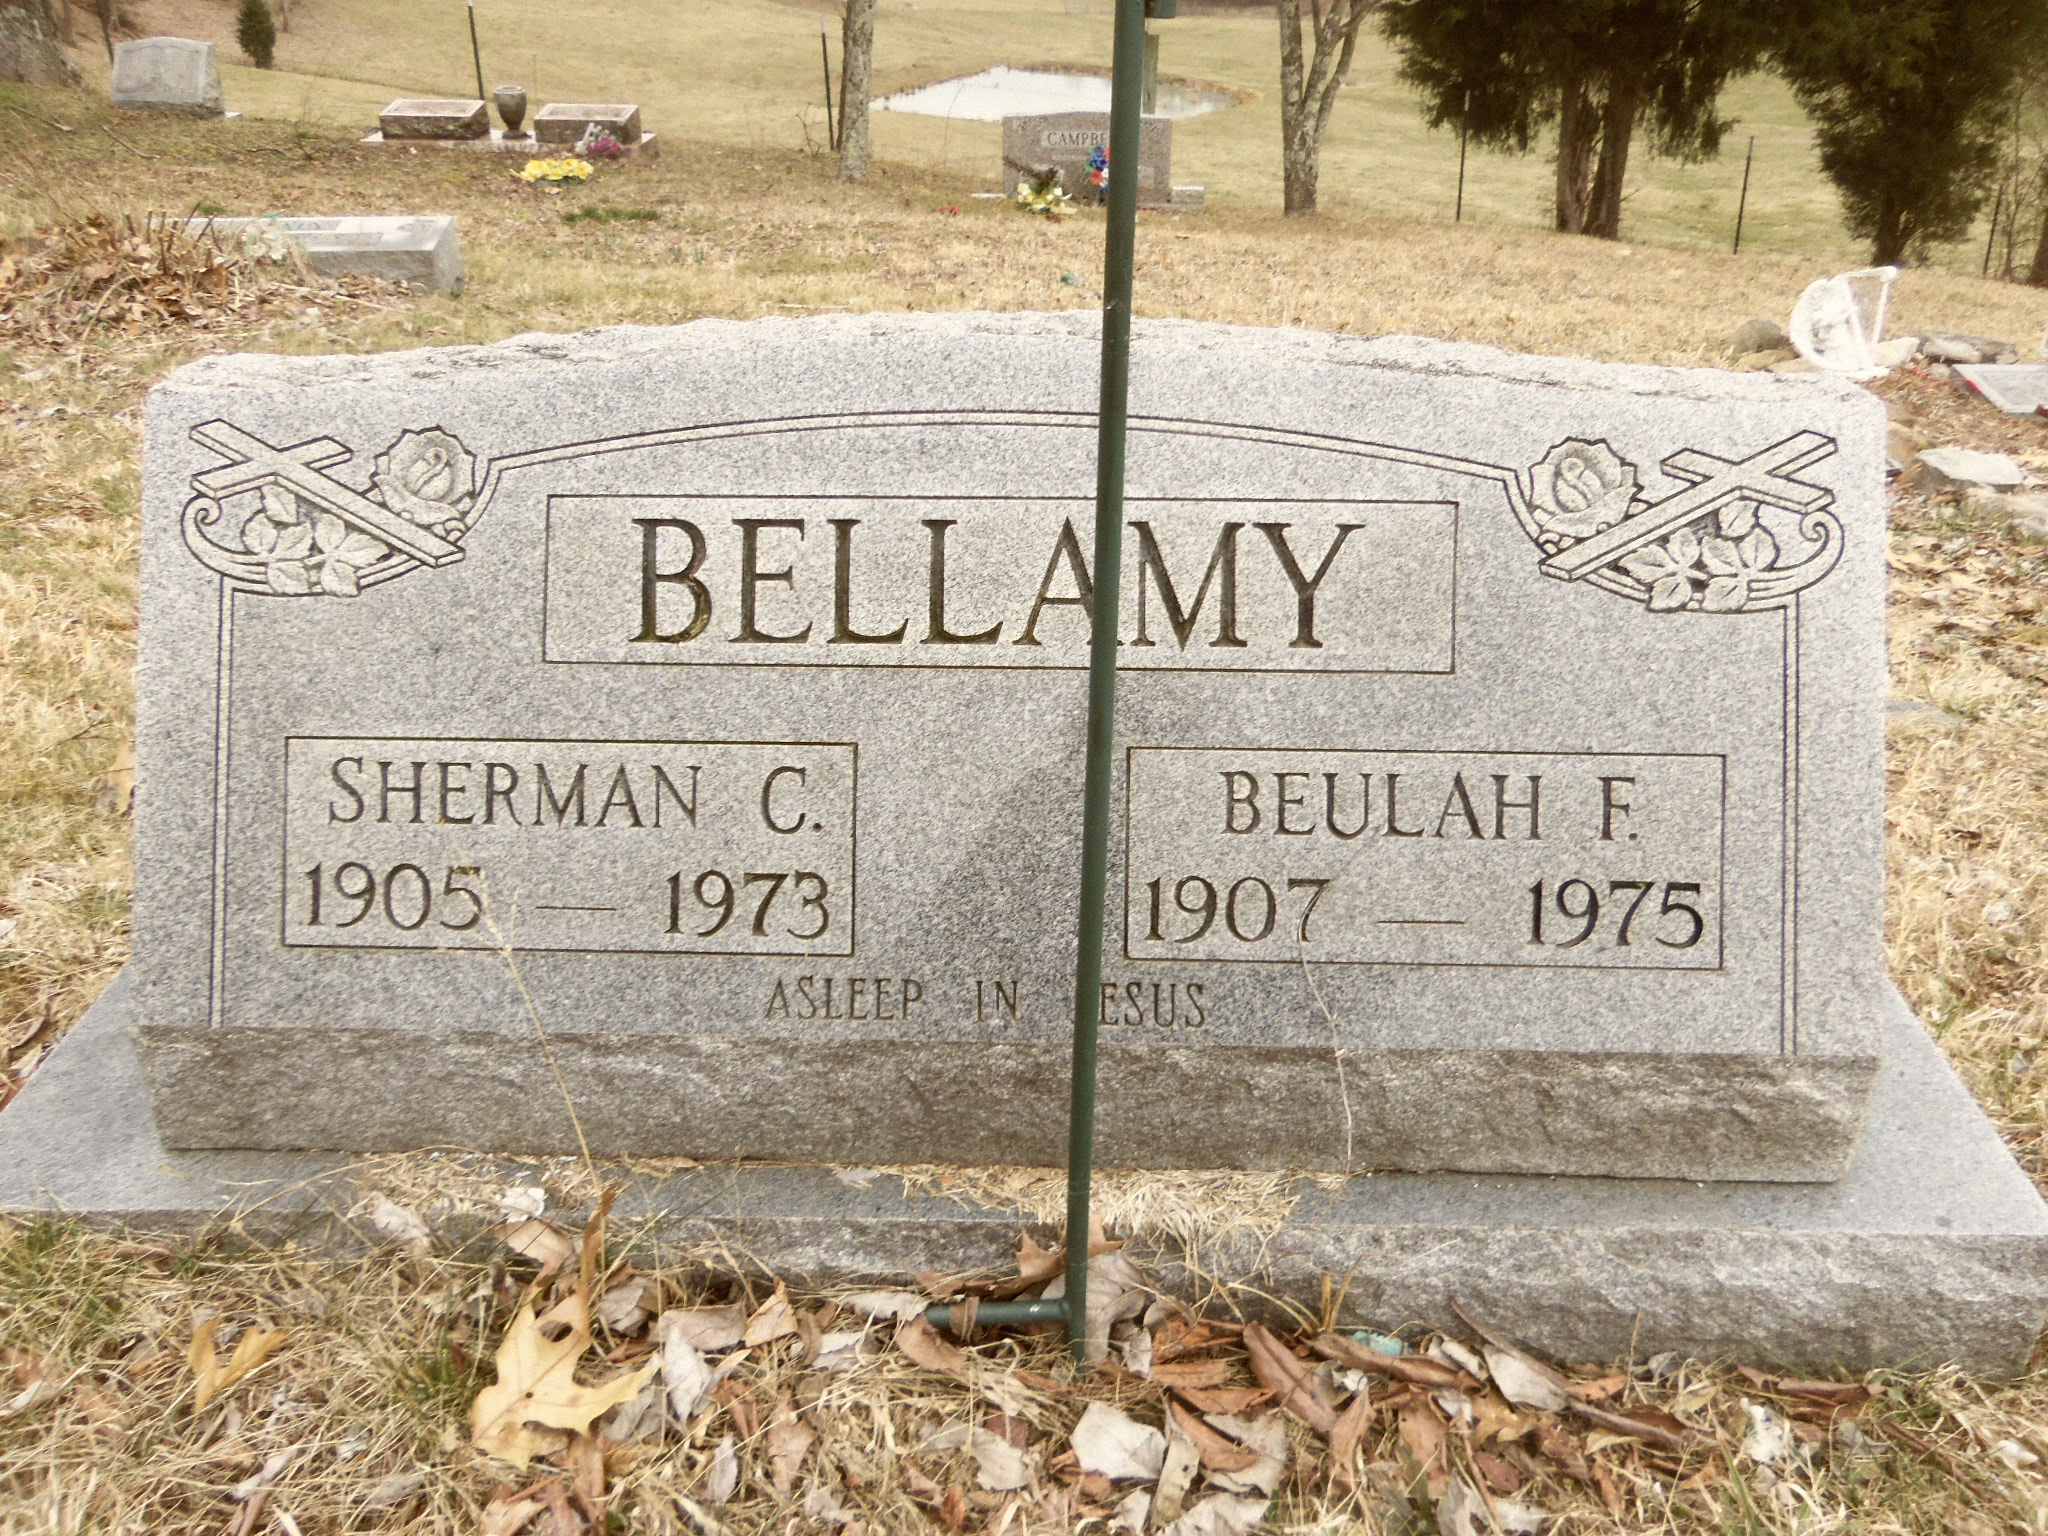 Sherman Cassius Bellamy